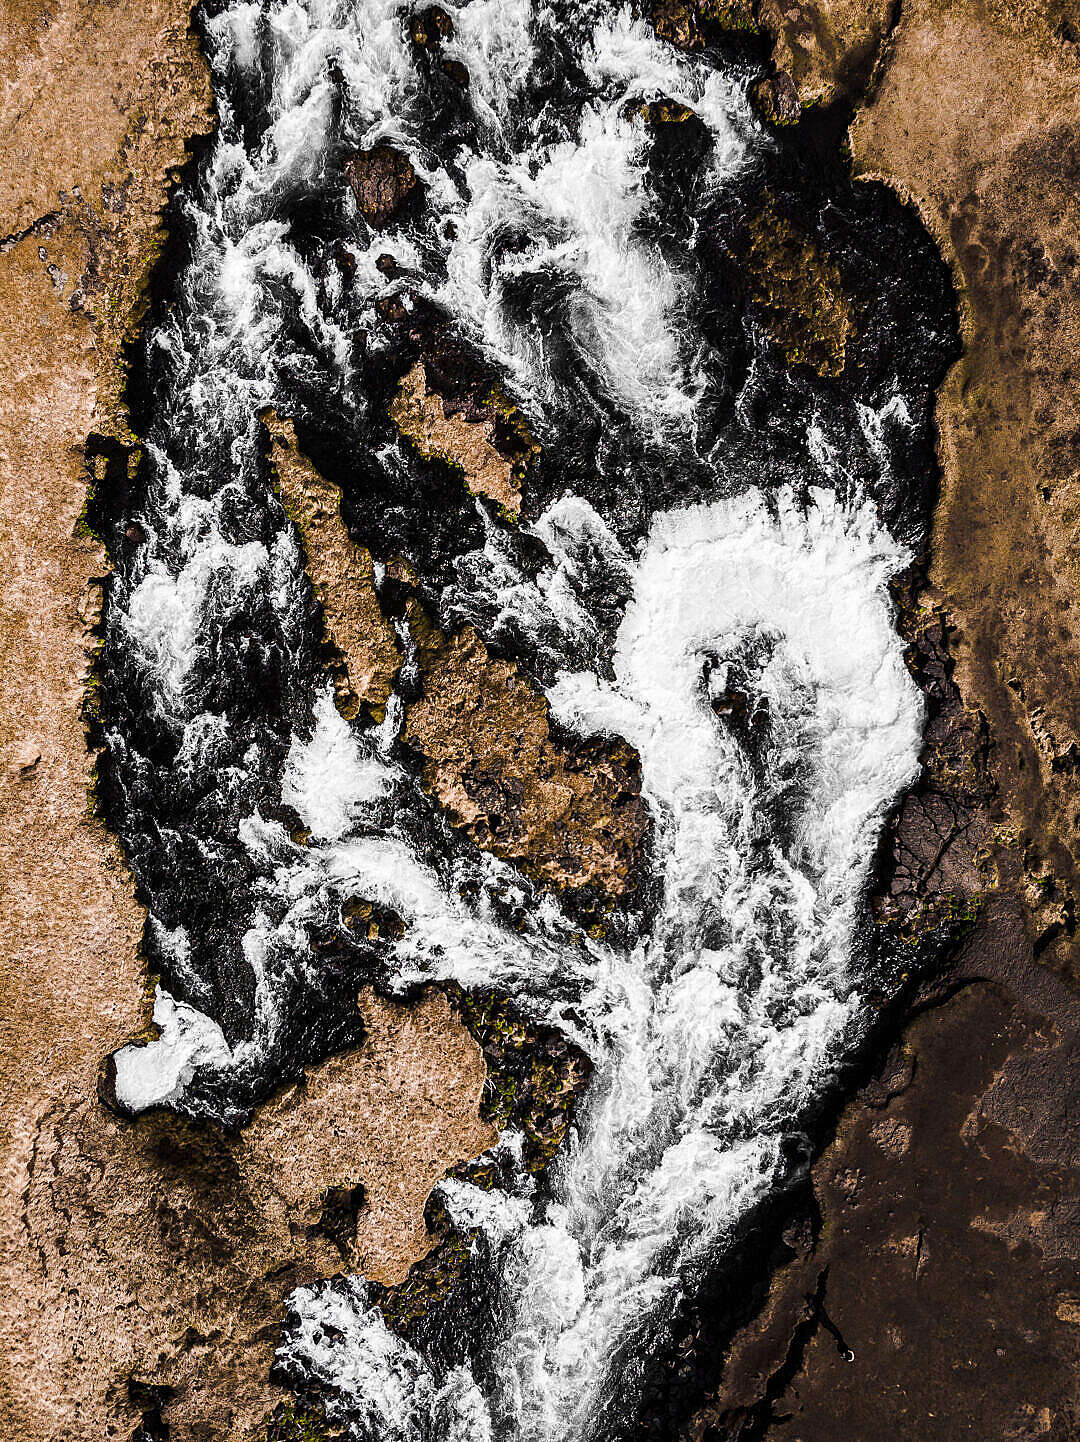 Download Icelandic River from Above FREE Stock Photo